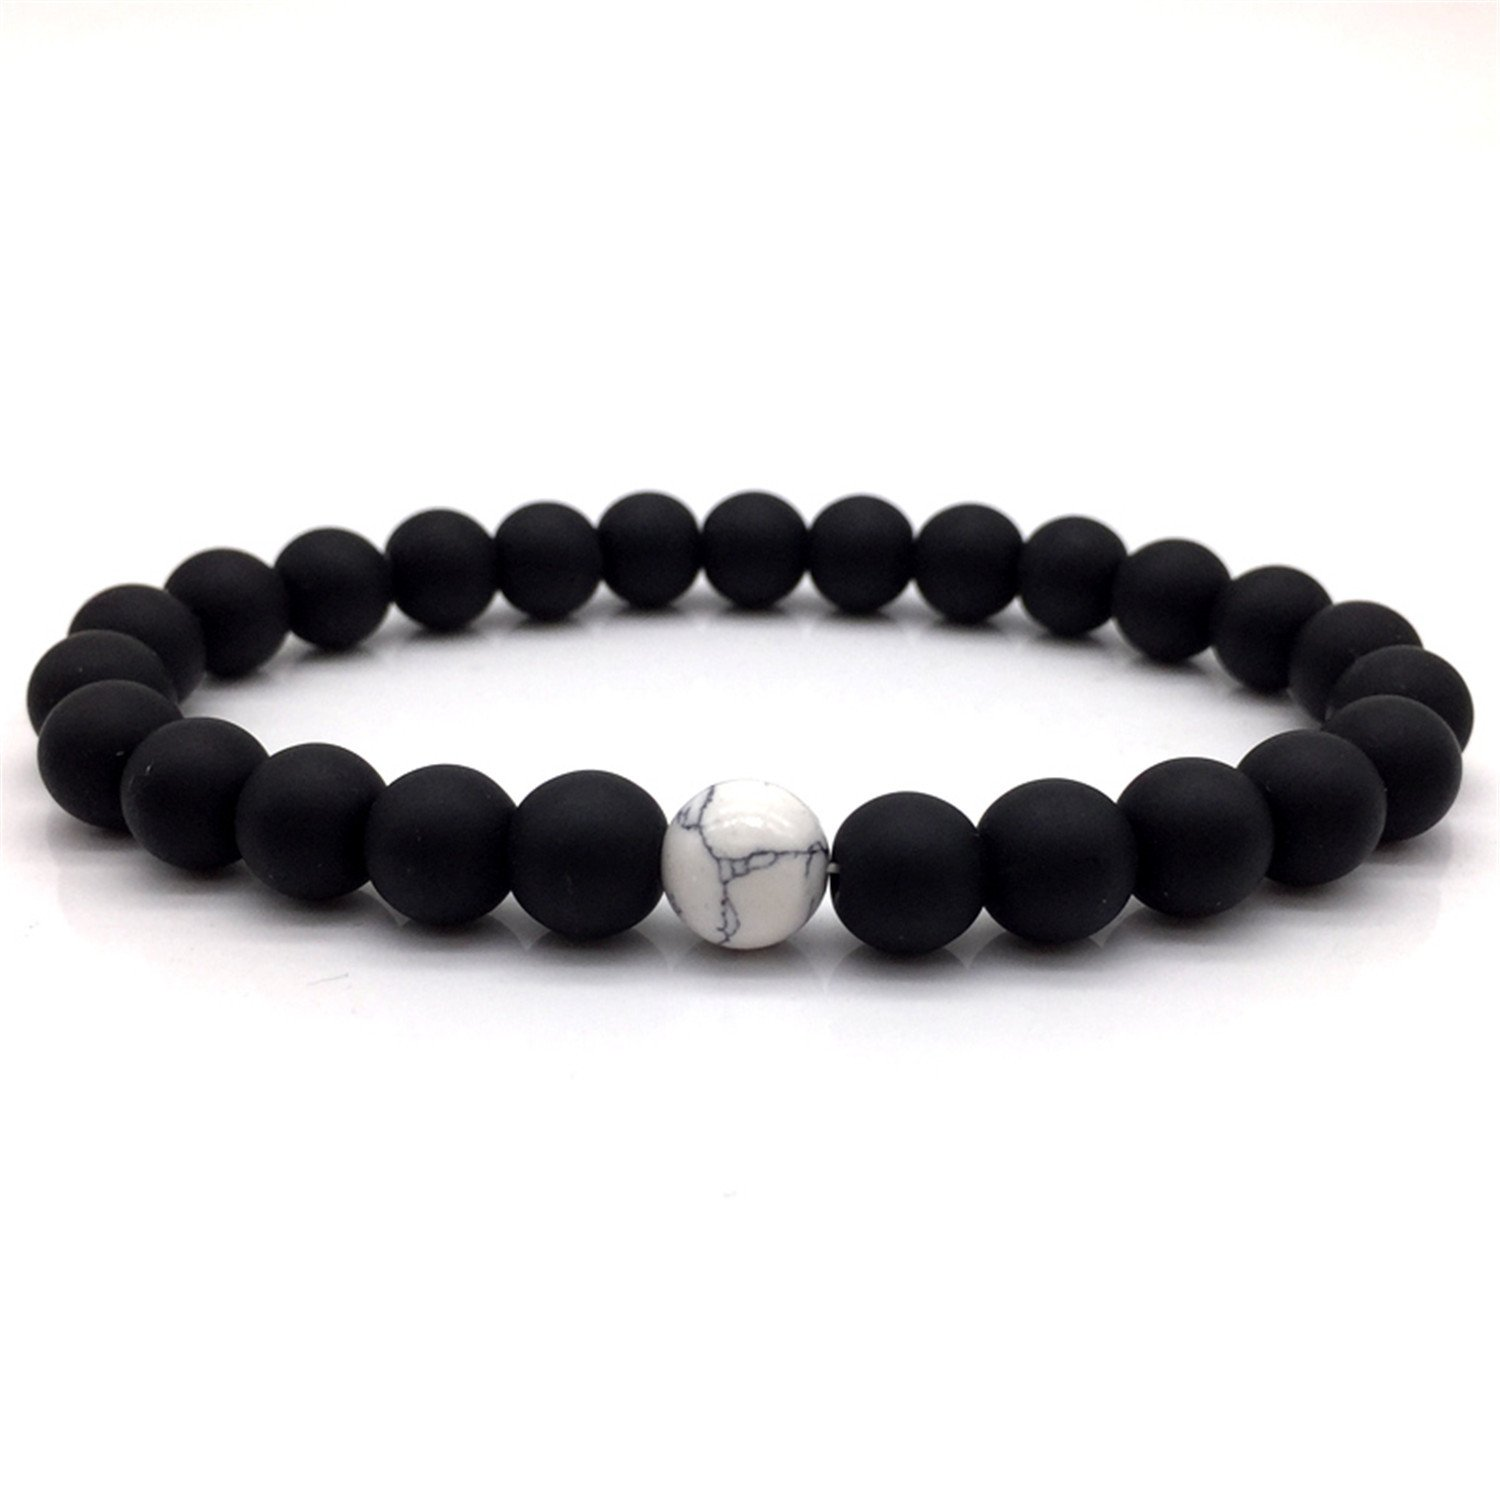 Dapengzhu 2018 H0T Fashion Classic Marble Beaded Bracelets for Men Women Natural black & white Stone Bead Jewelry gift